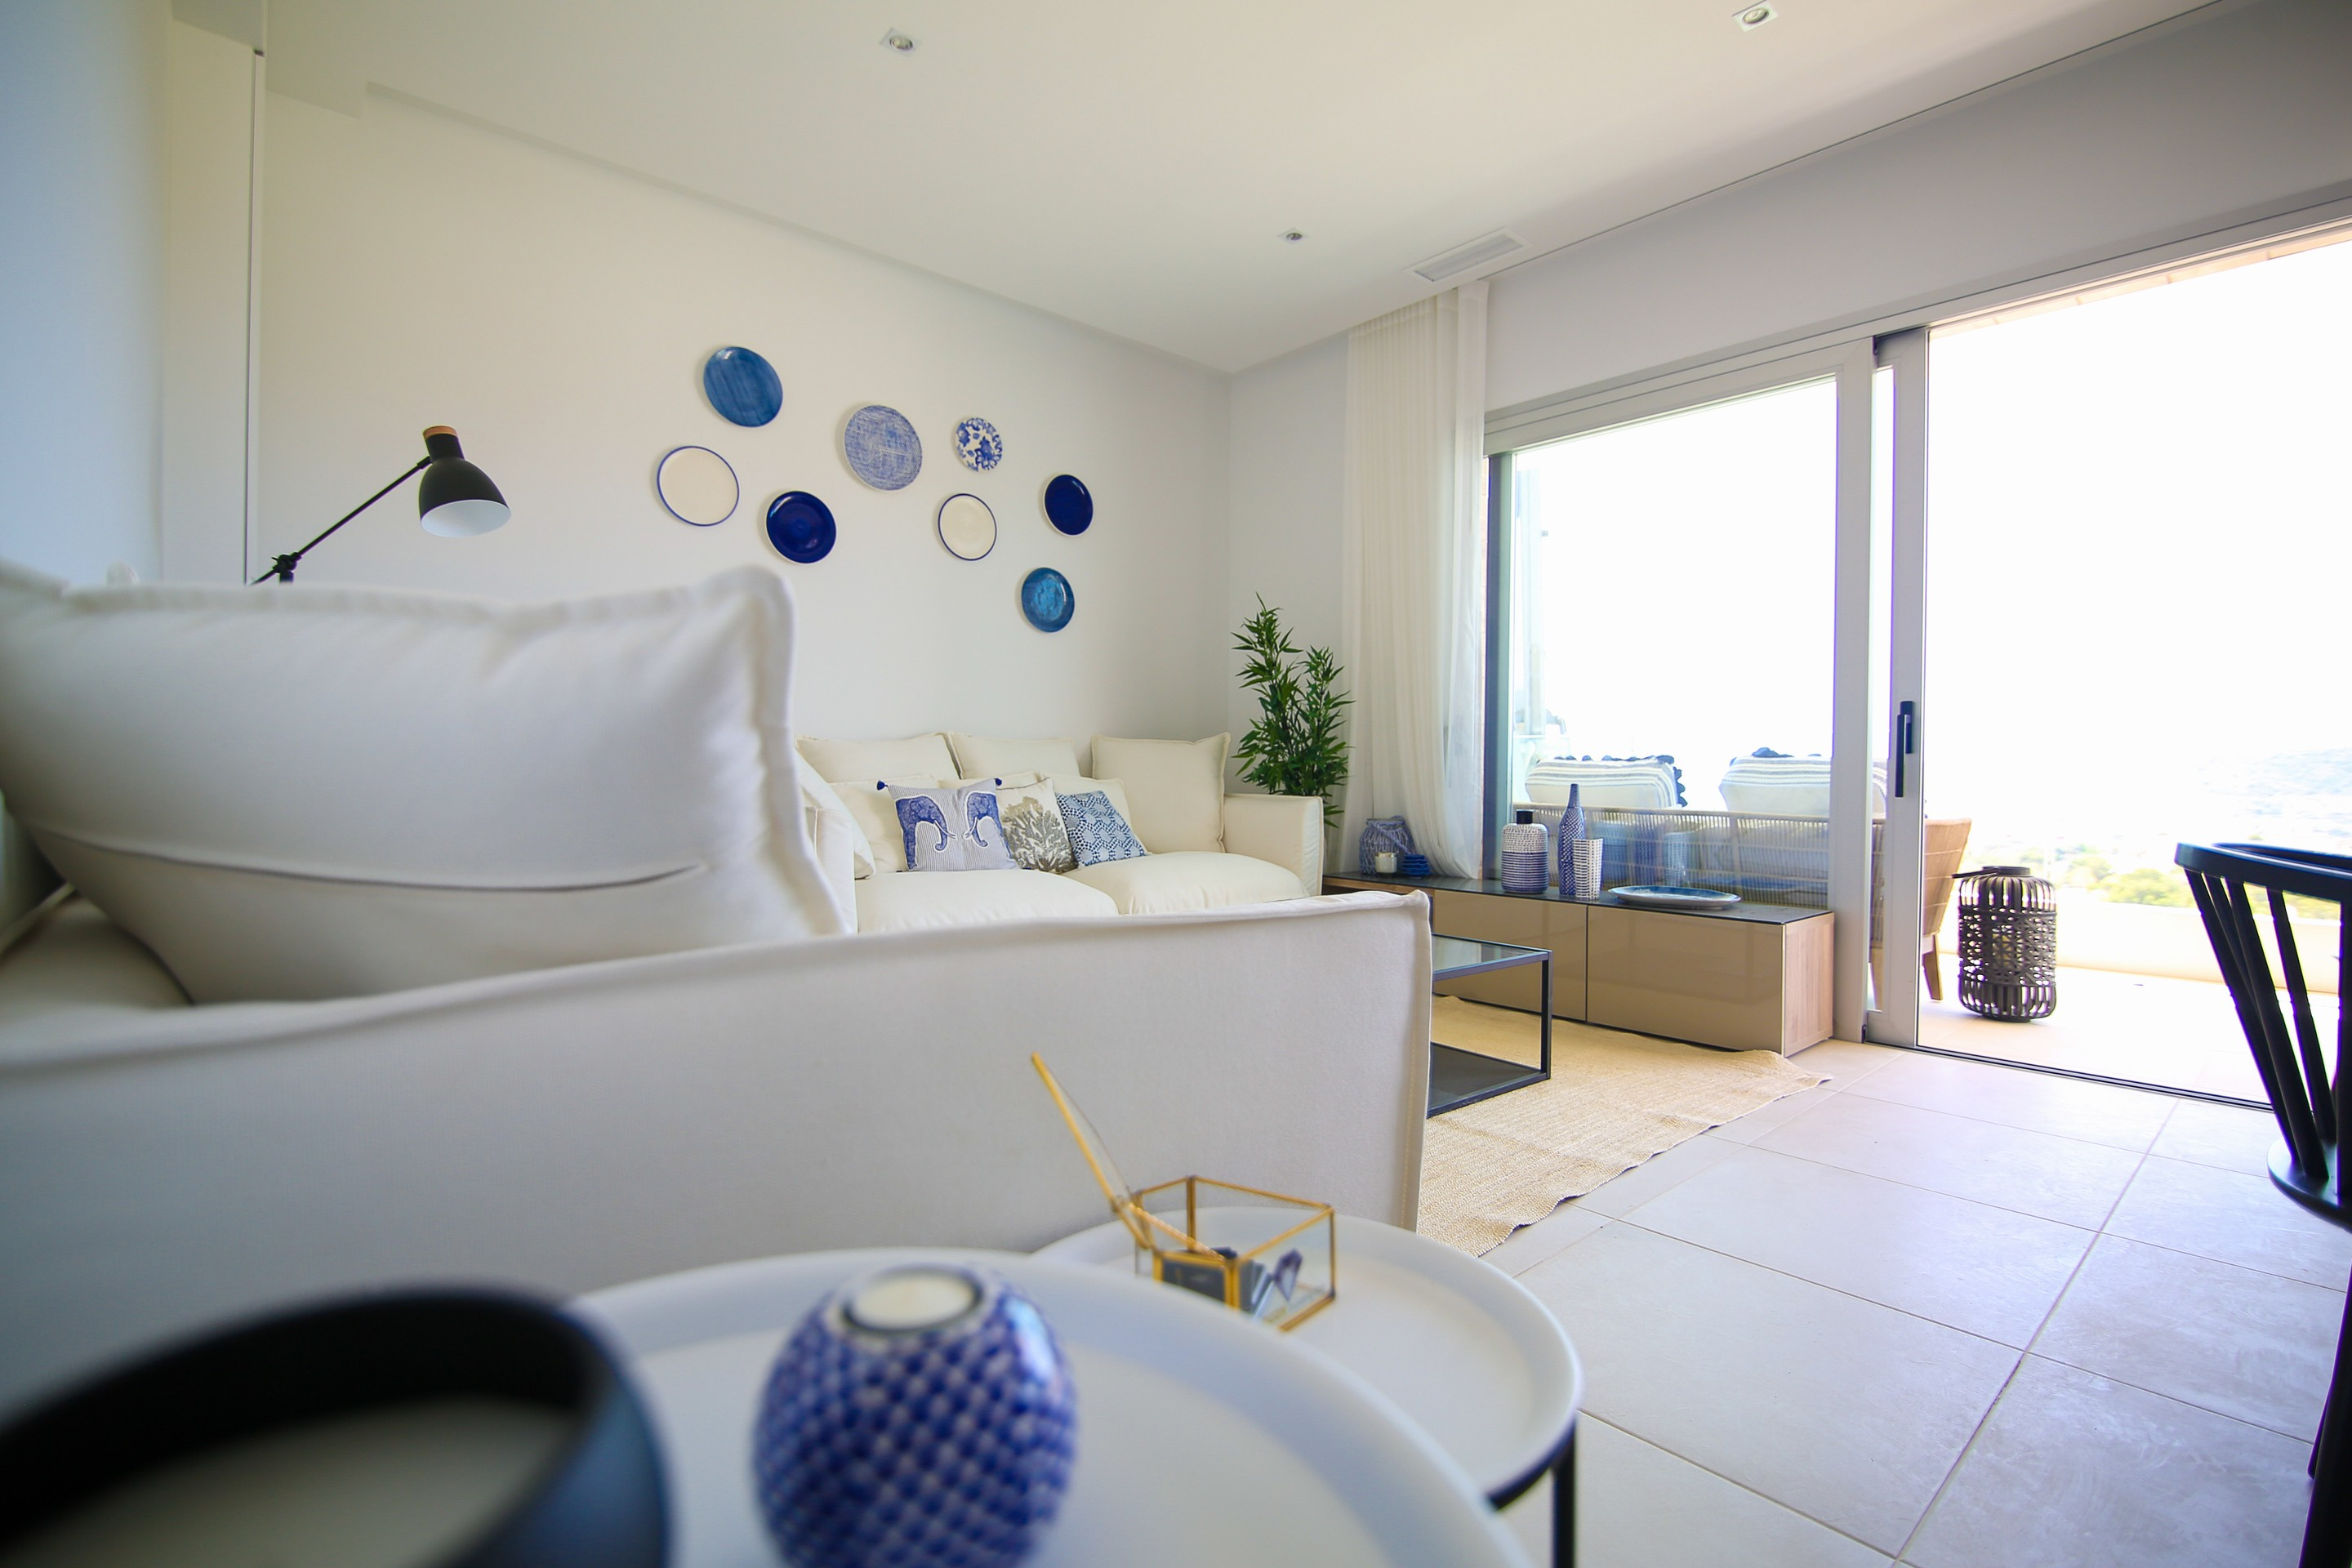 2 bedroom apartment For Sale in Finestrat - photograph 23